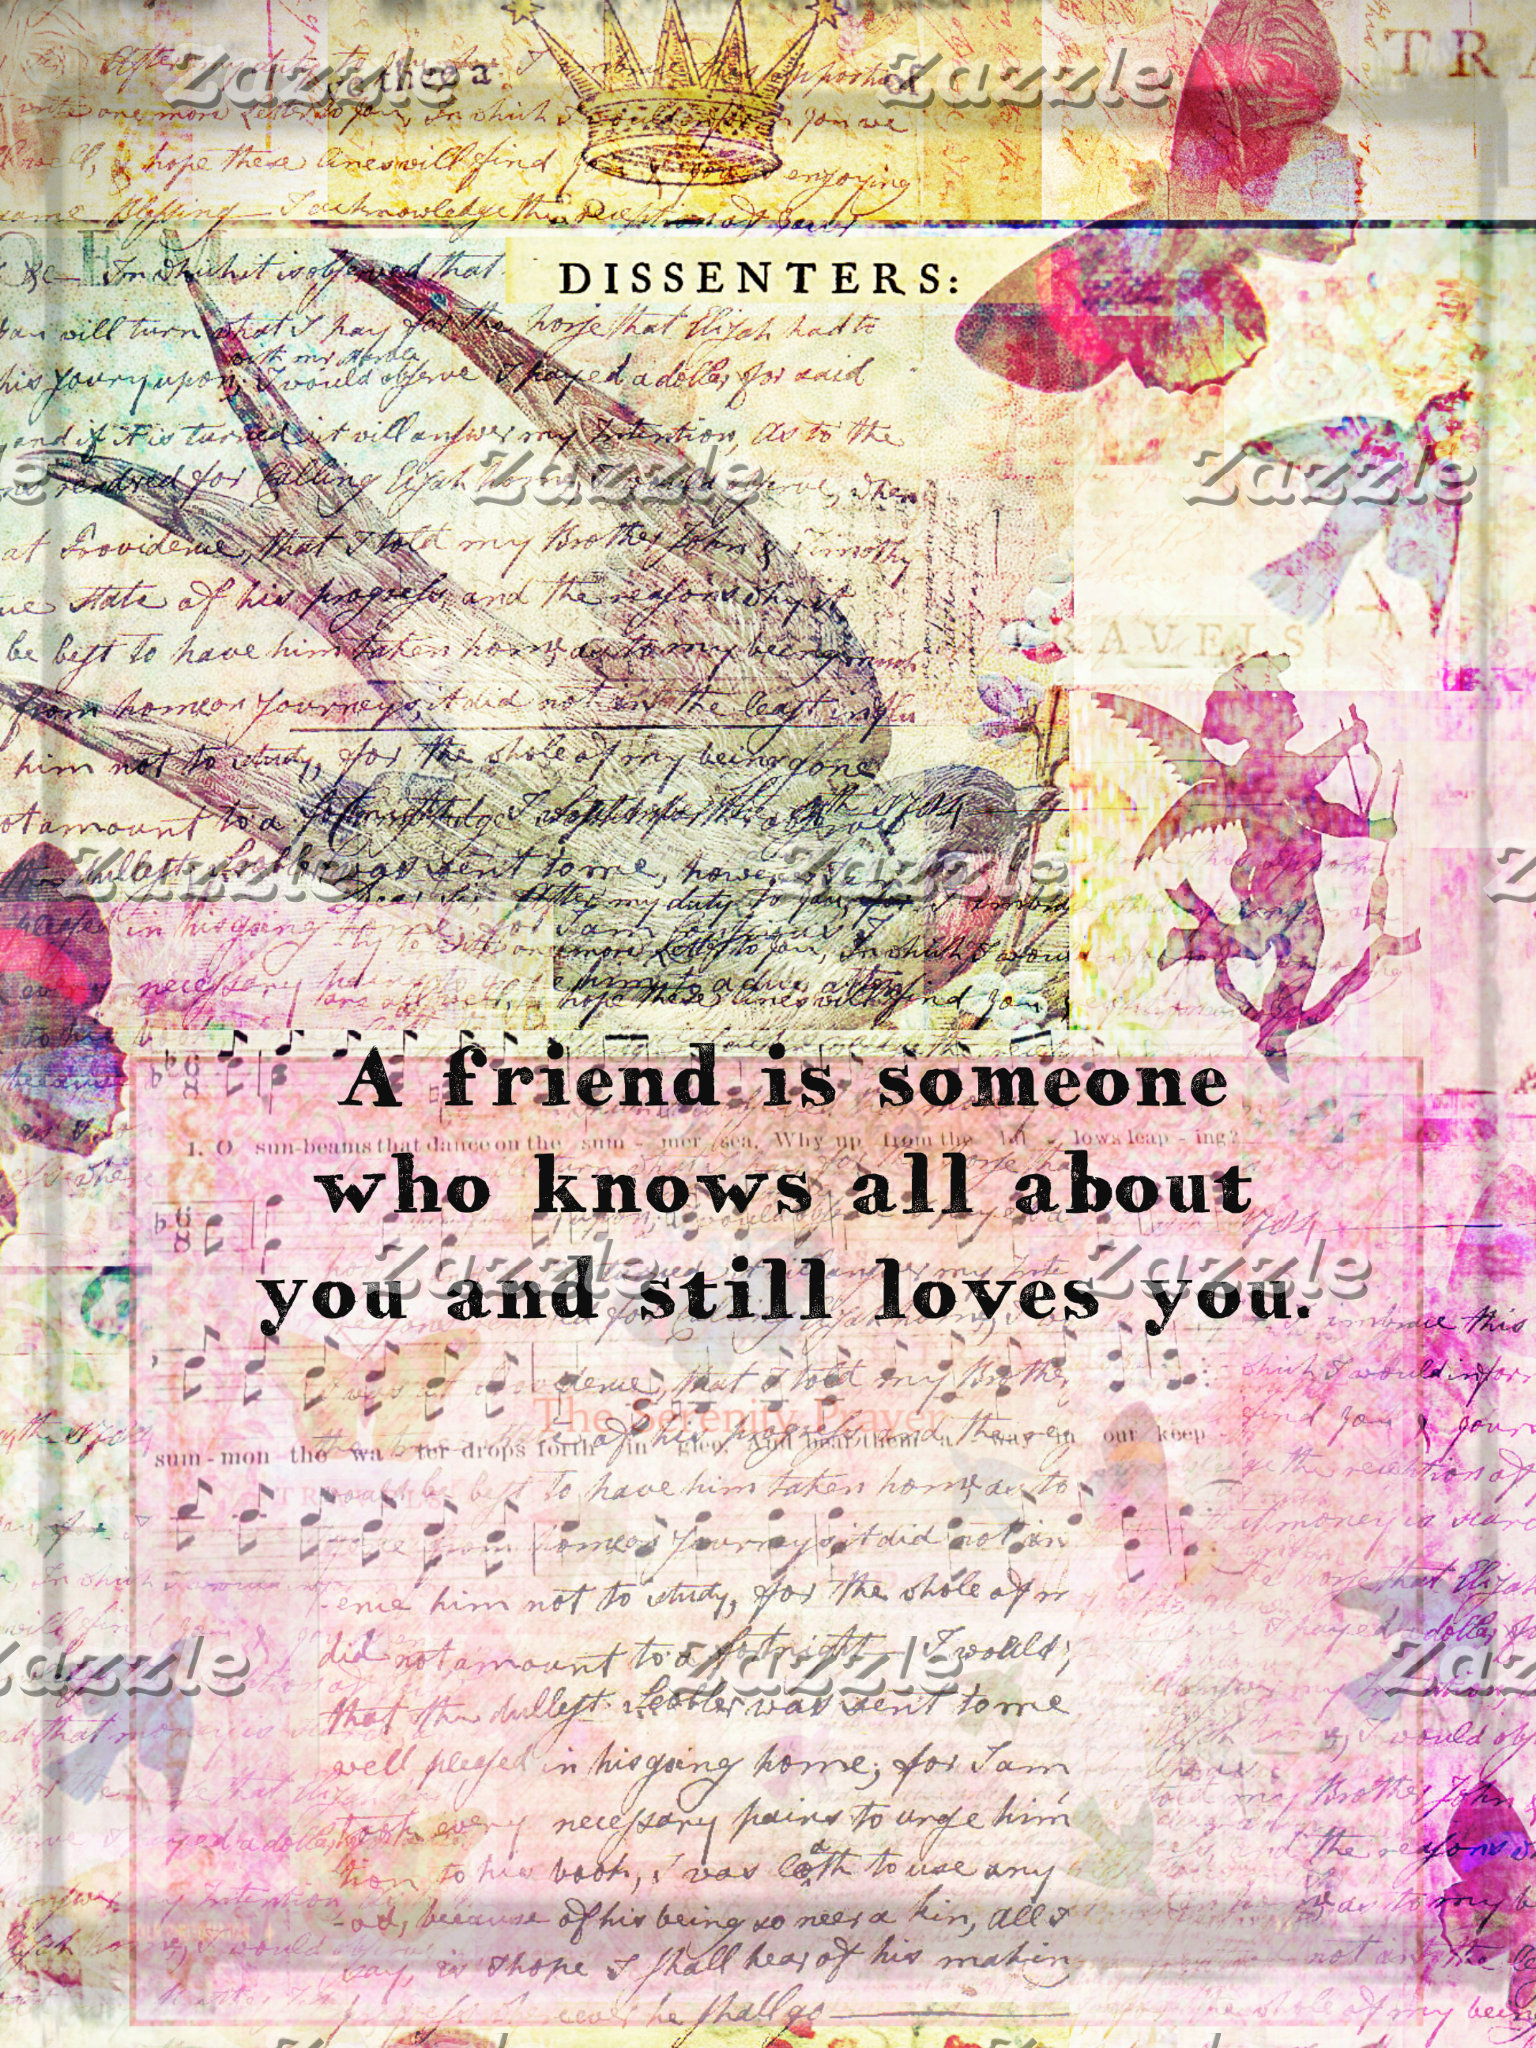 A friend is someone who knows all about you and...